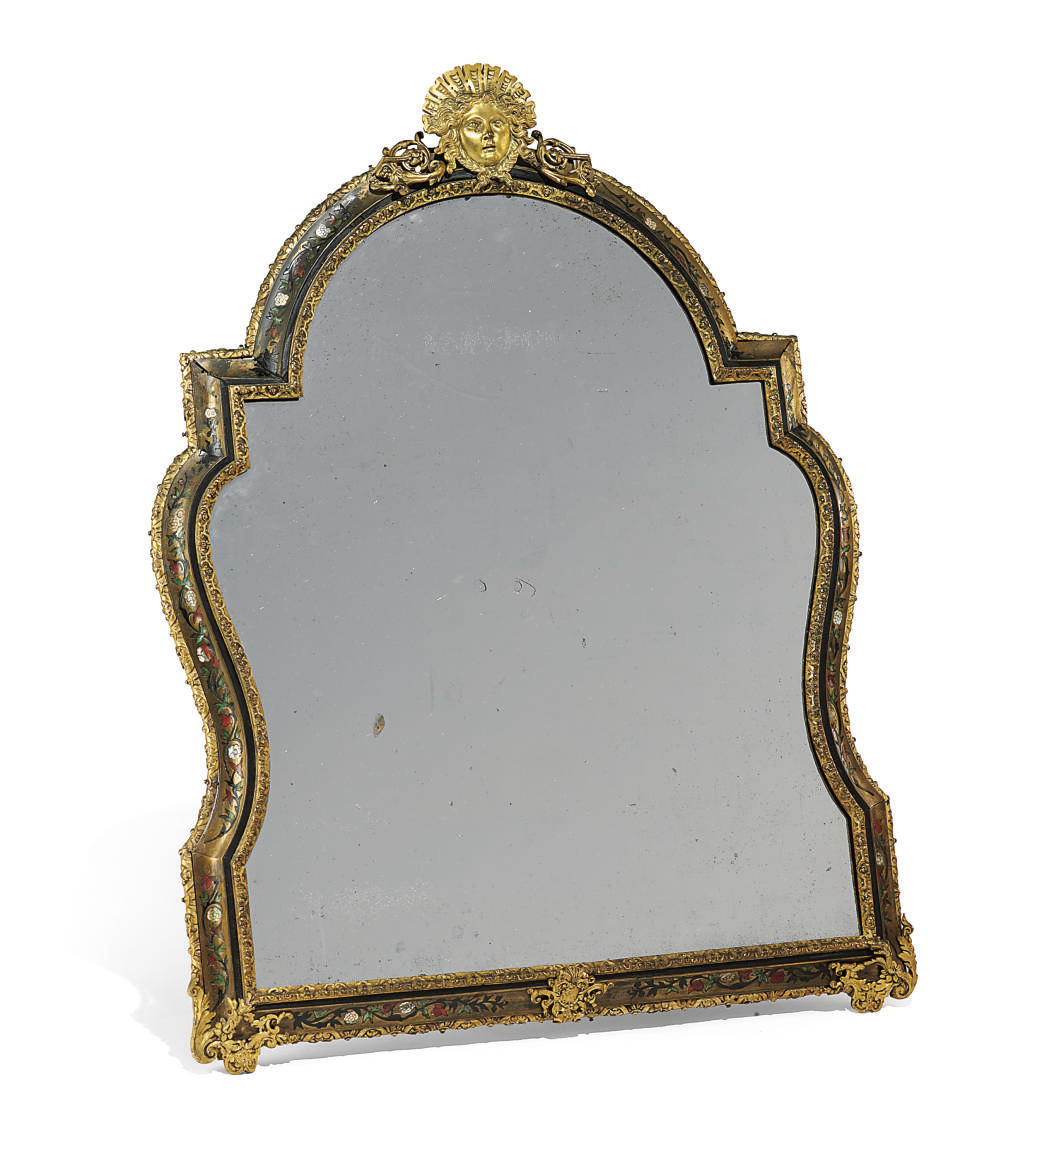 A REGENCE ORMOLU-MOUNTED, TORTOISESHELL, MOTHER-OF-PEARL AND STAINED HORN-INLAID, BOULLE MARQUETRY TABLE MIRROR